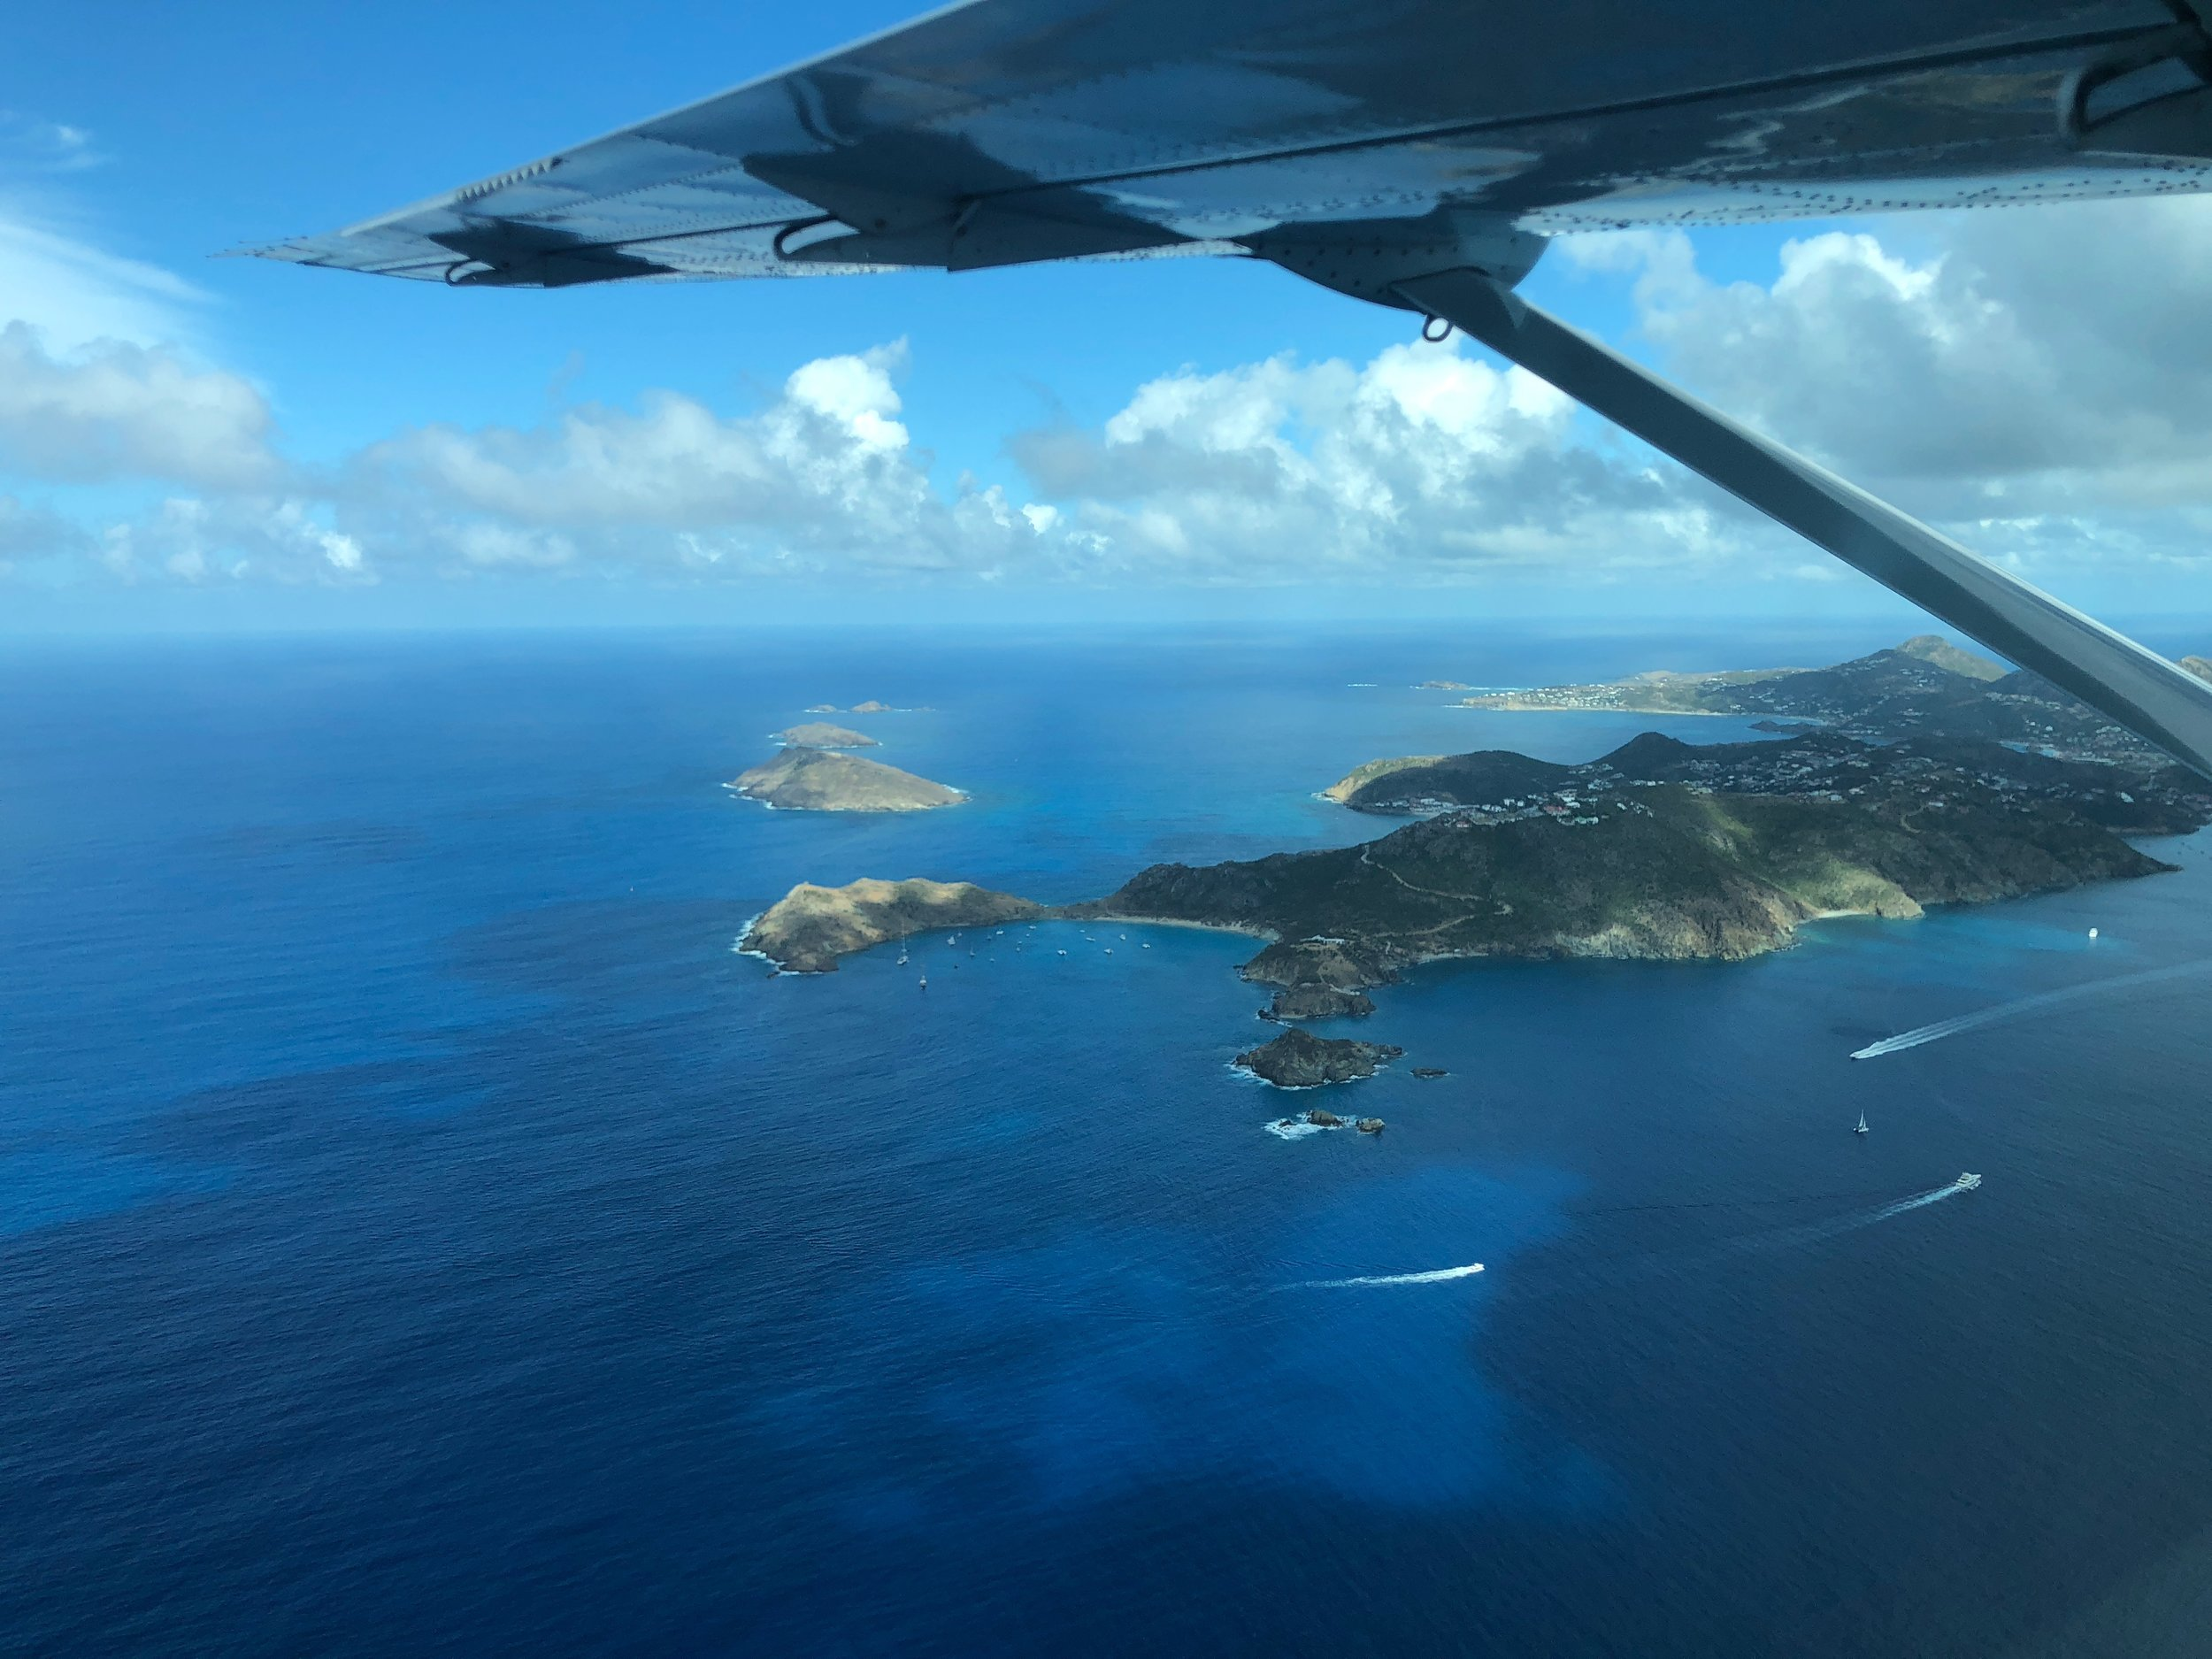 St. Bart's on approach from St. Martin